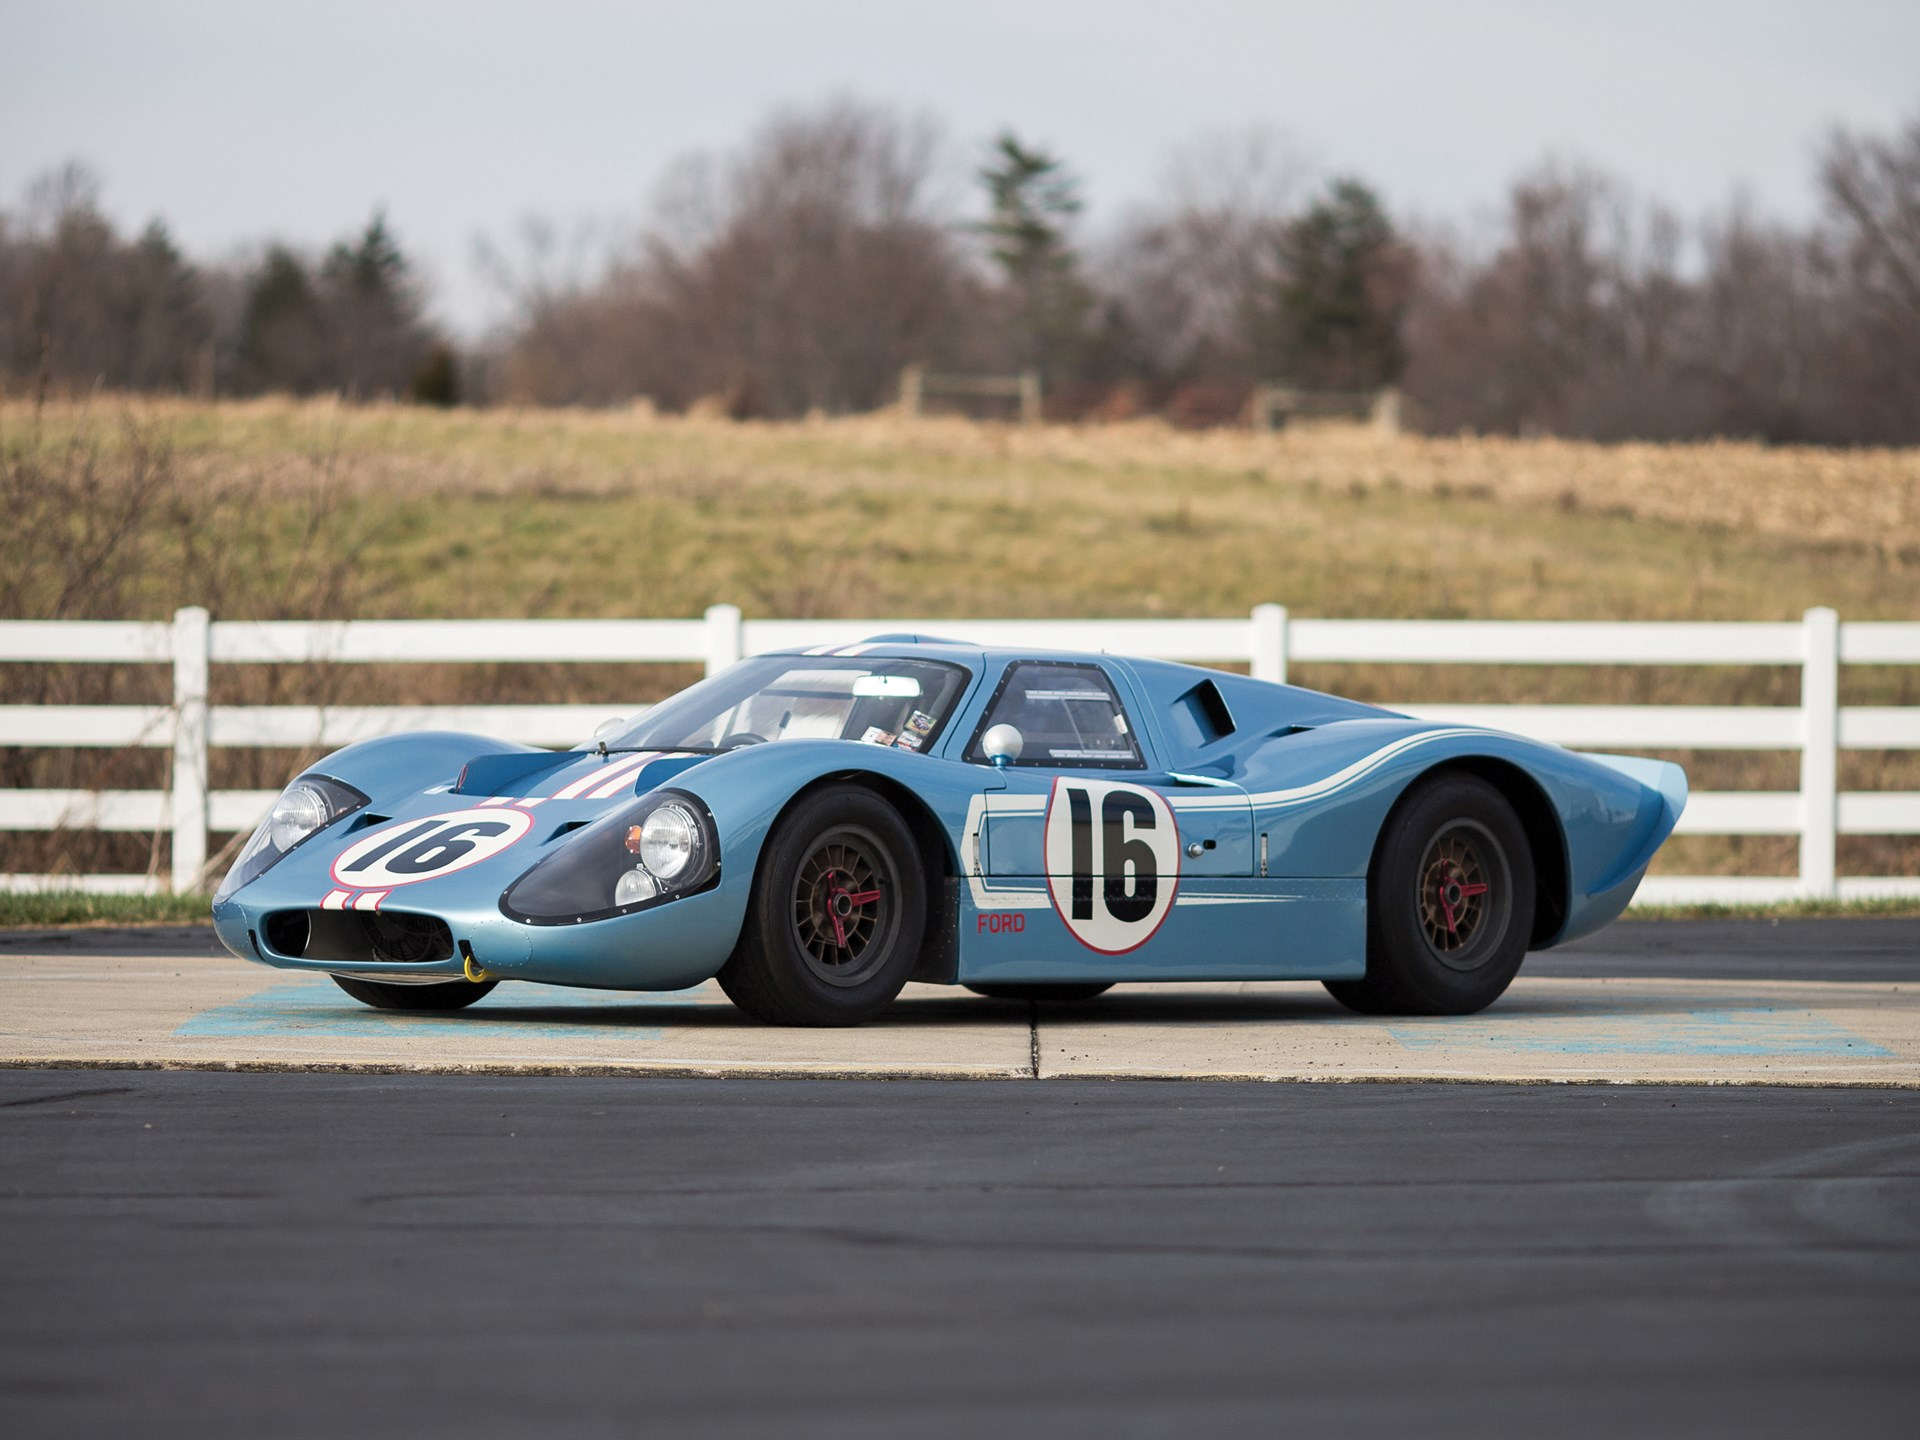 1967 Ford GT40 Mk IV Continuation by Kar Kraft